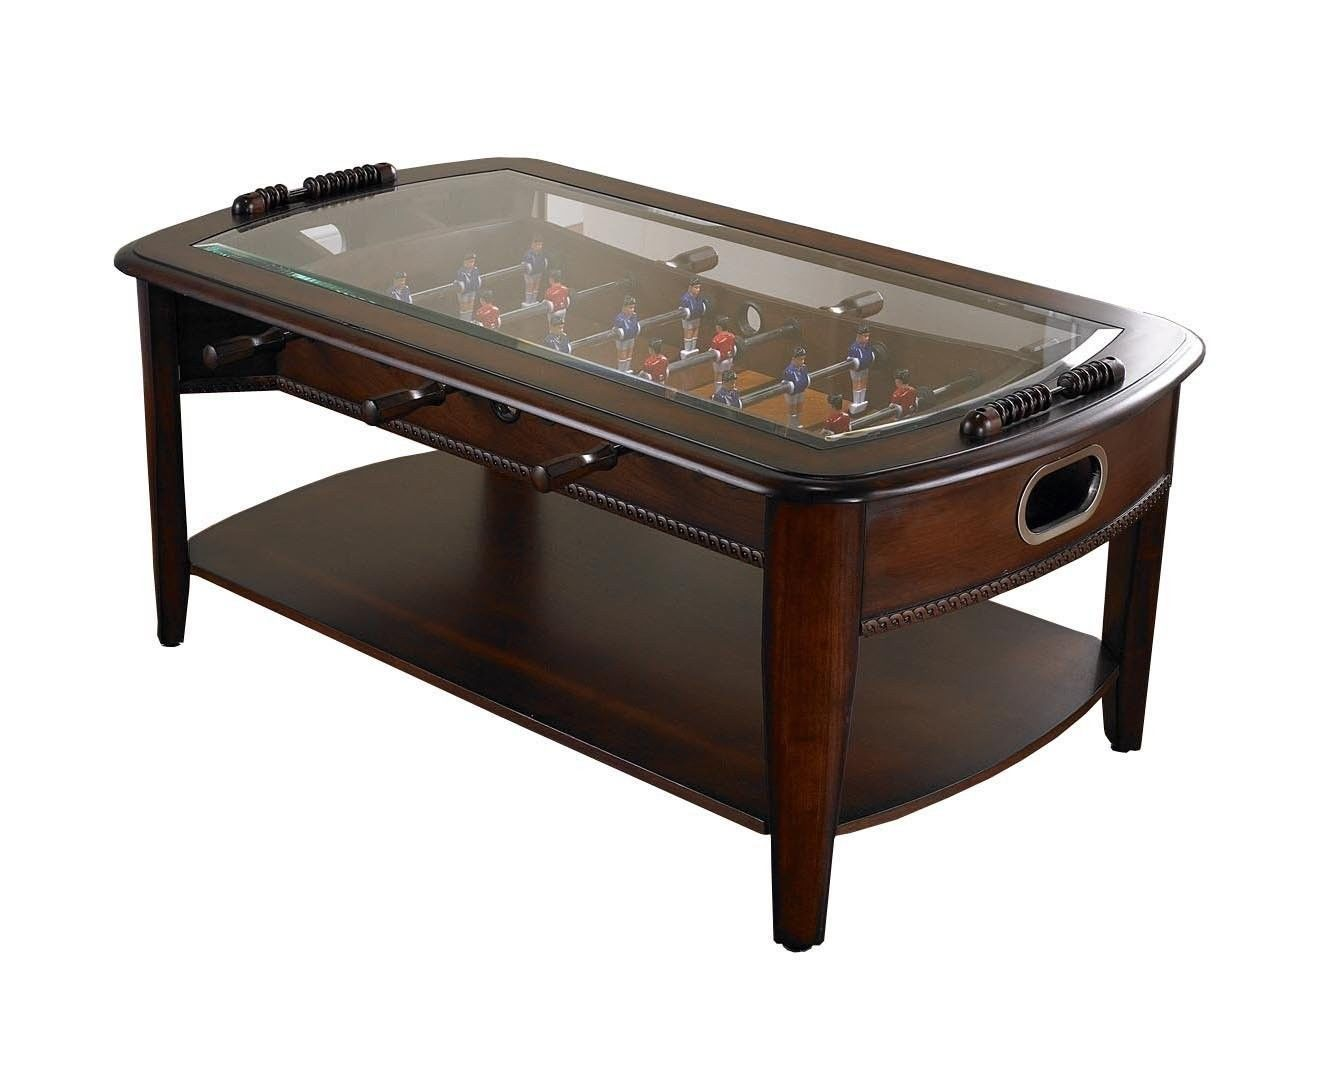 Foosball Coffee Table Game Room Sports Man Arcade Soccer Football Basketball New Tables